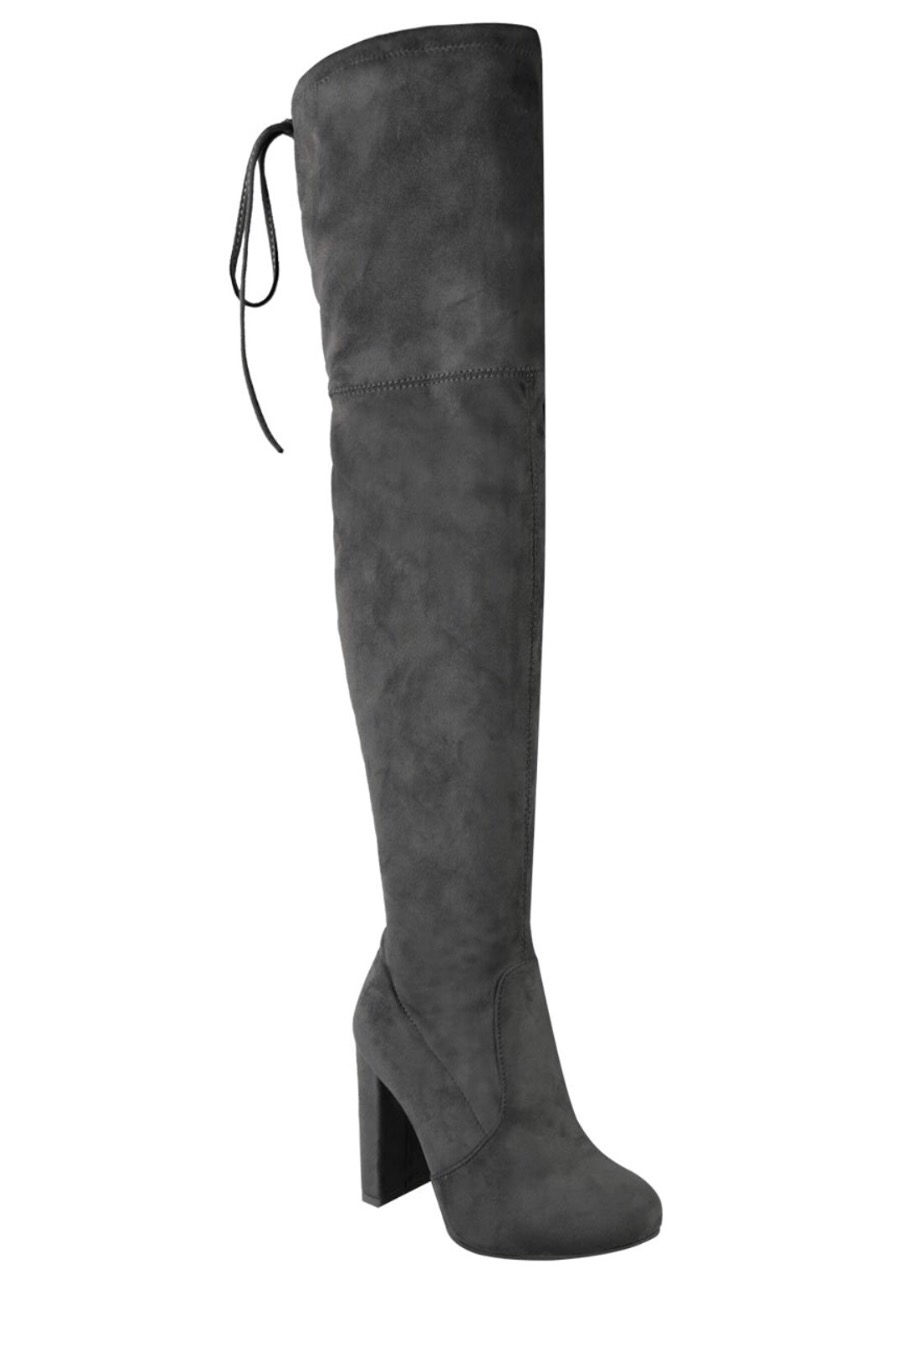 Khaleesi Thigh High Boots- Grey - Hapa Clothing - 4